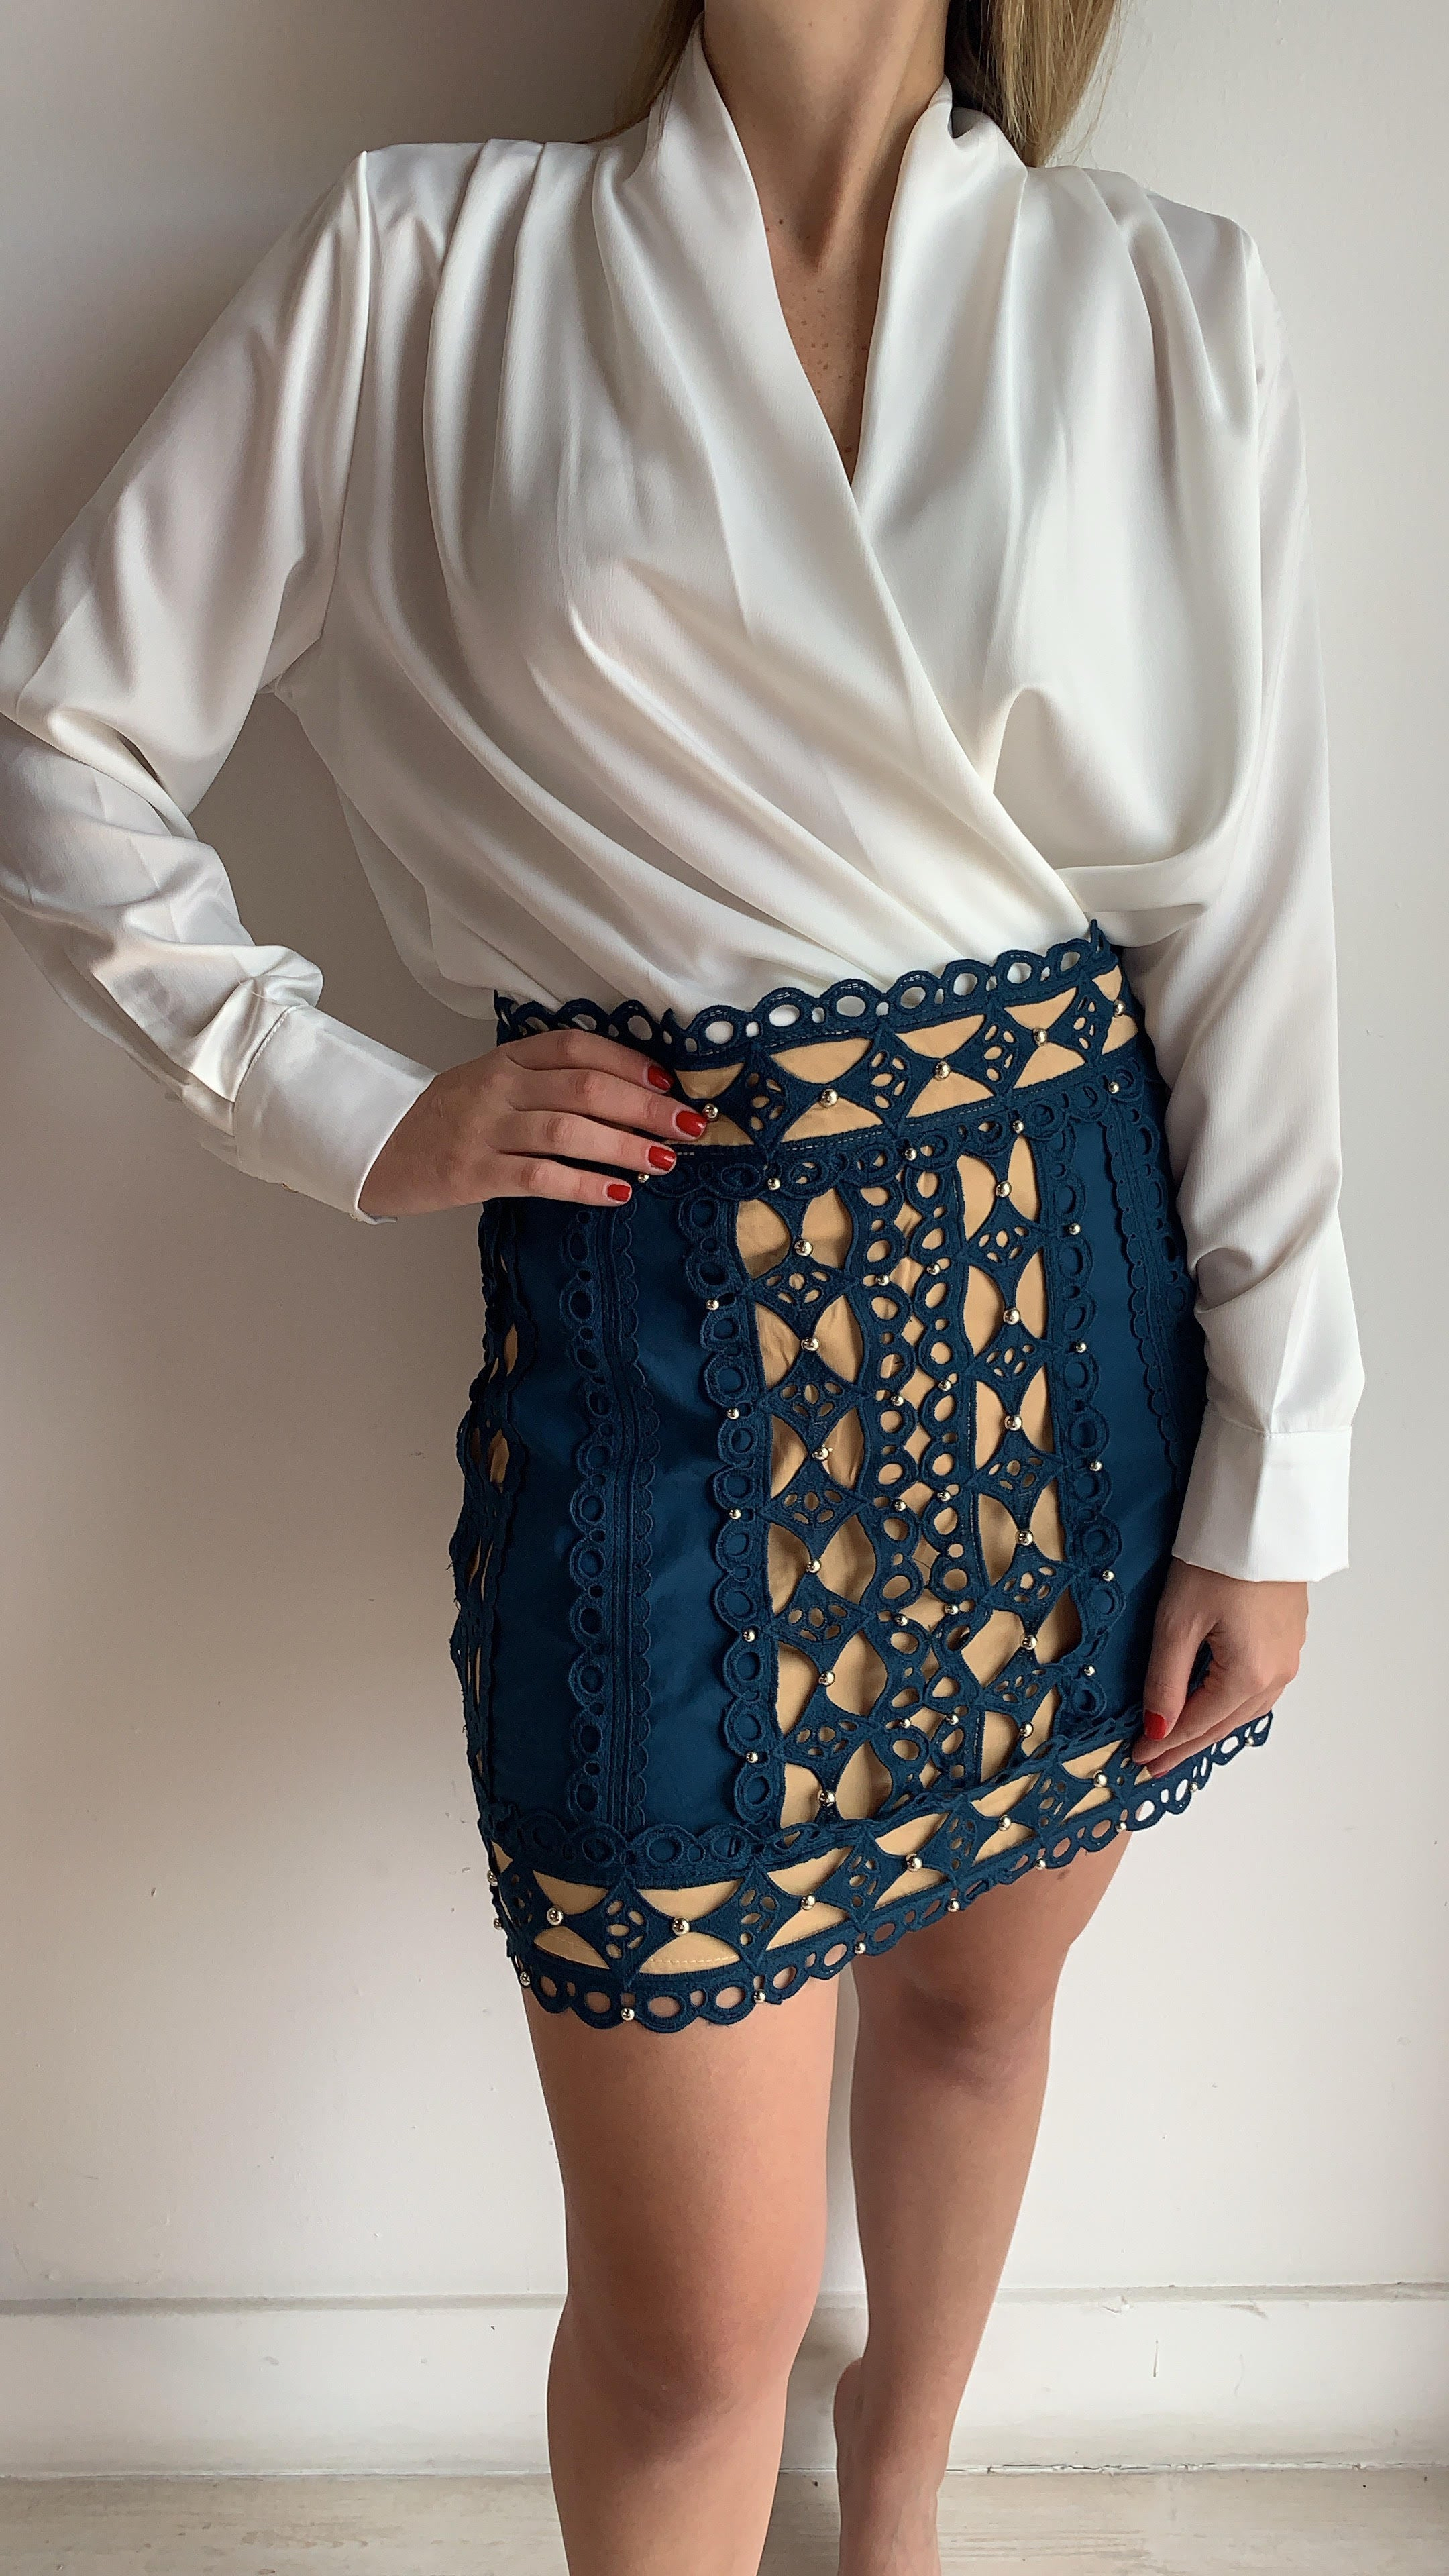 Studded Lace Teal Skirt